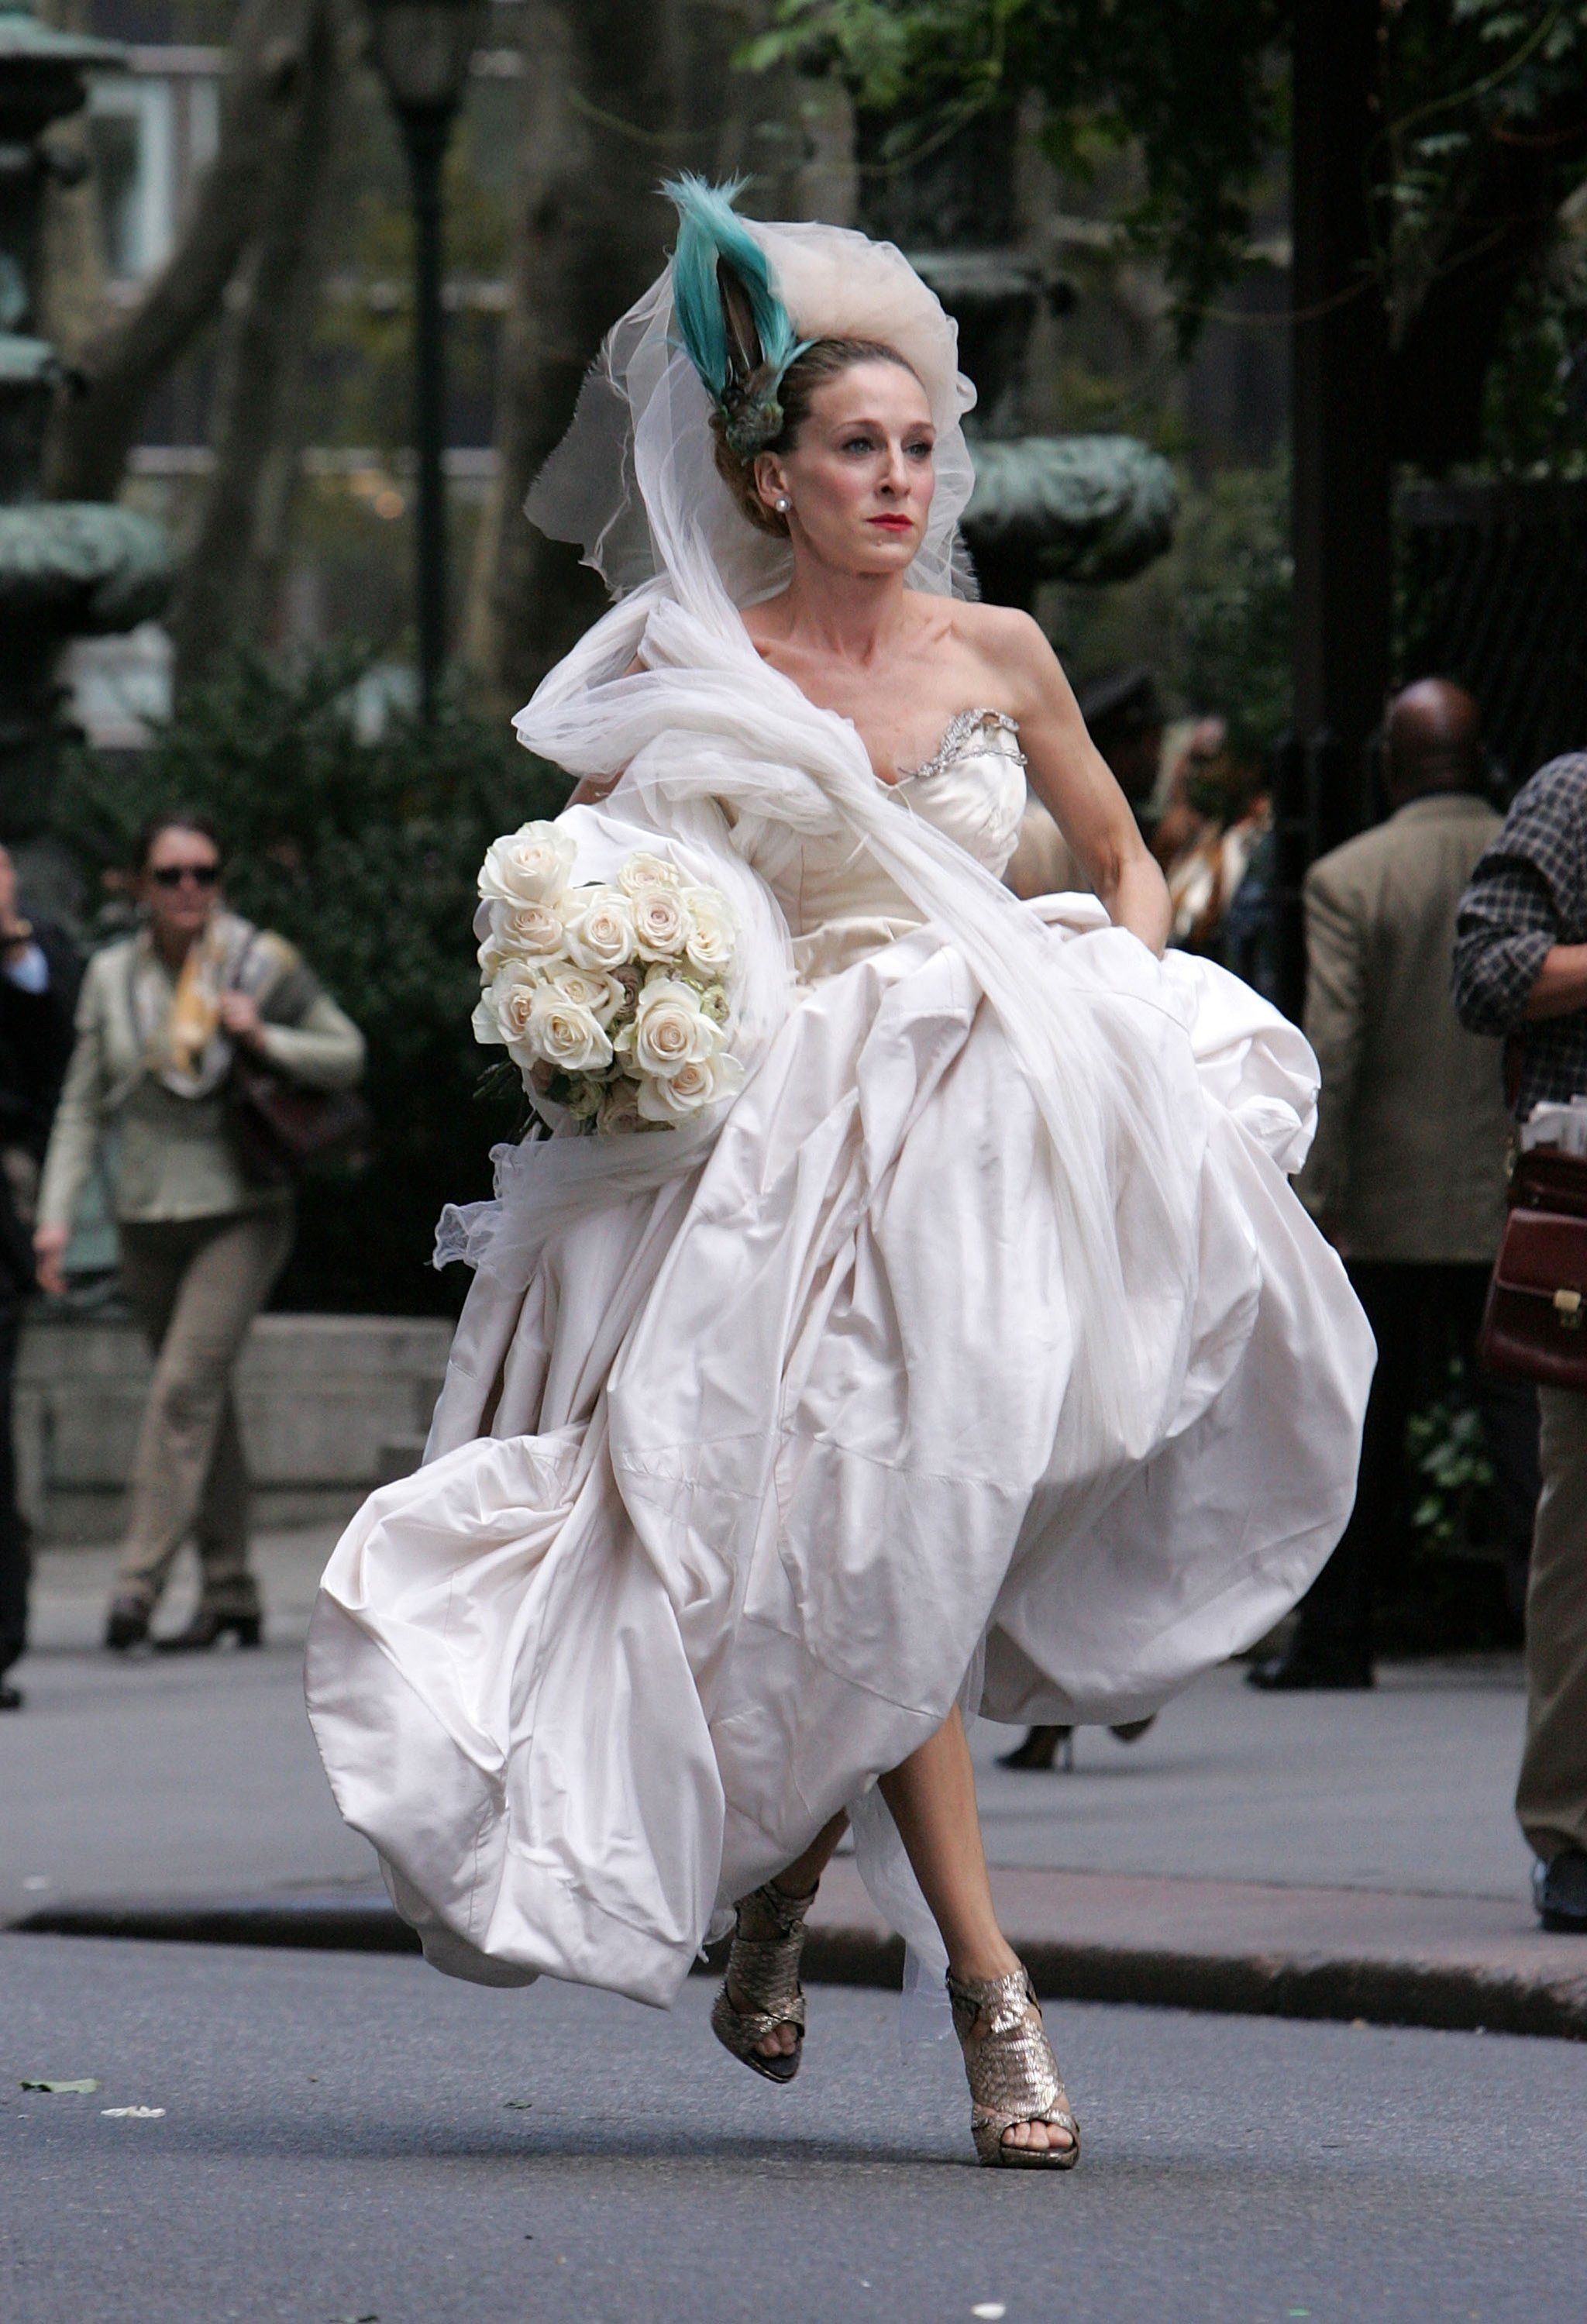 See All The Wedding Dresses That Didn't Make It Into The Sex And The City Picture